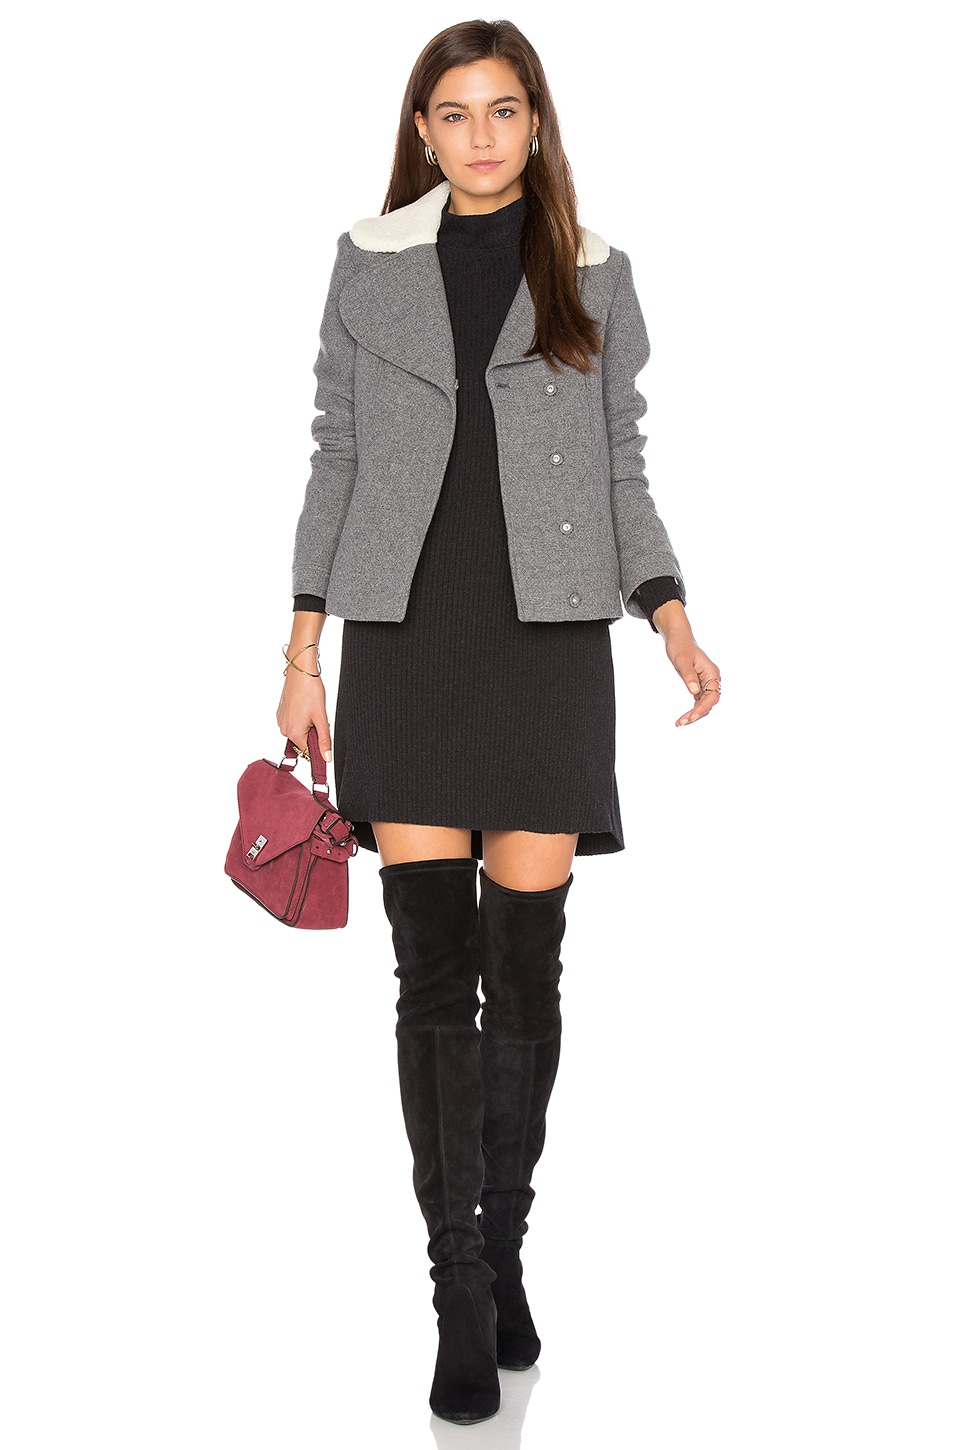 Leonor Faux Sherpa Lined Coat by ba&sh